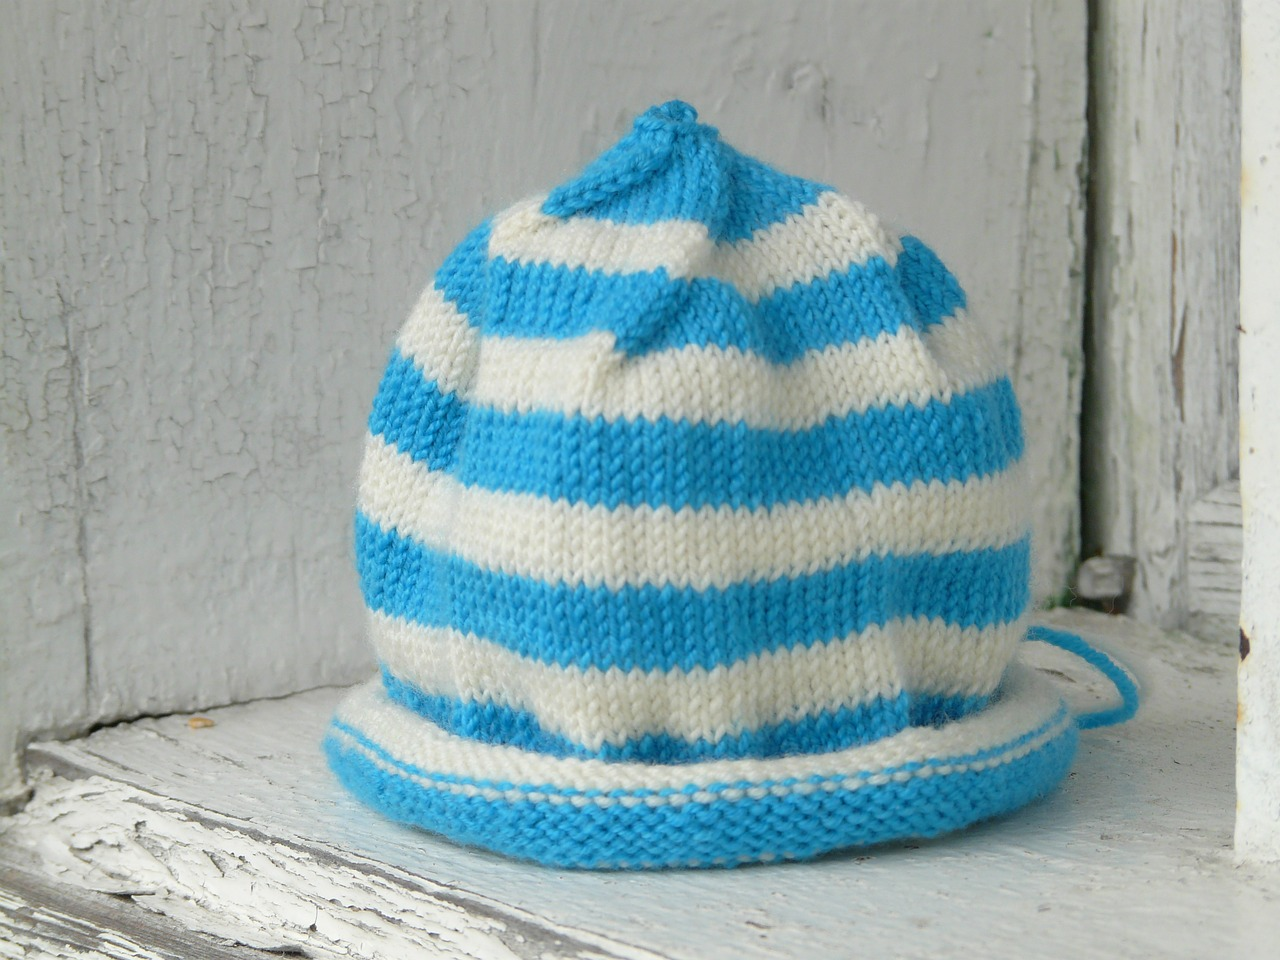 Easy Hat Knitting Pattern Loom : Loom Knitting by This Moment is Good!: EASY LOOM KNIT HAT...